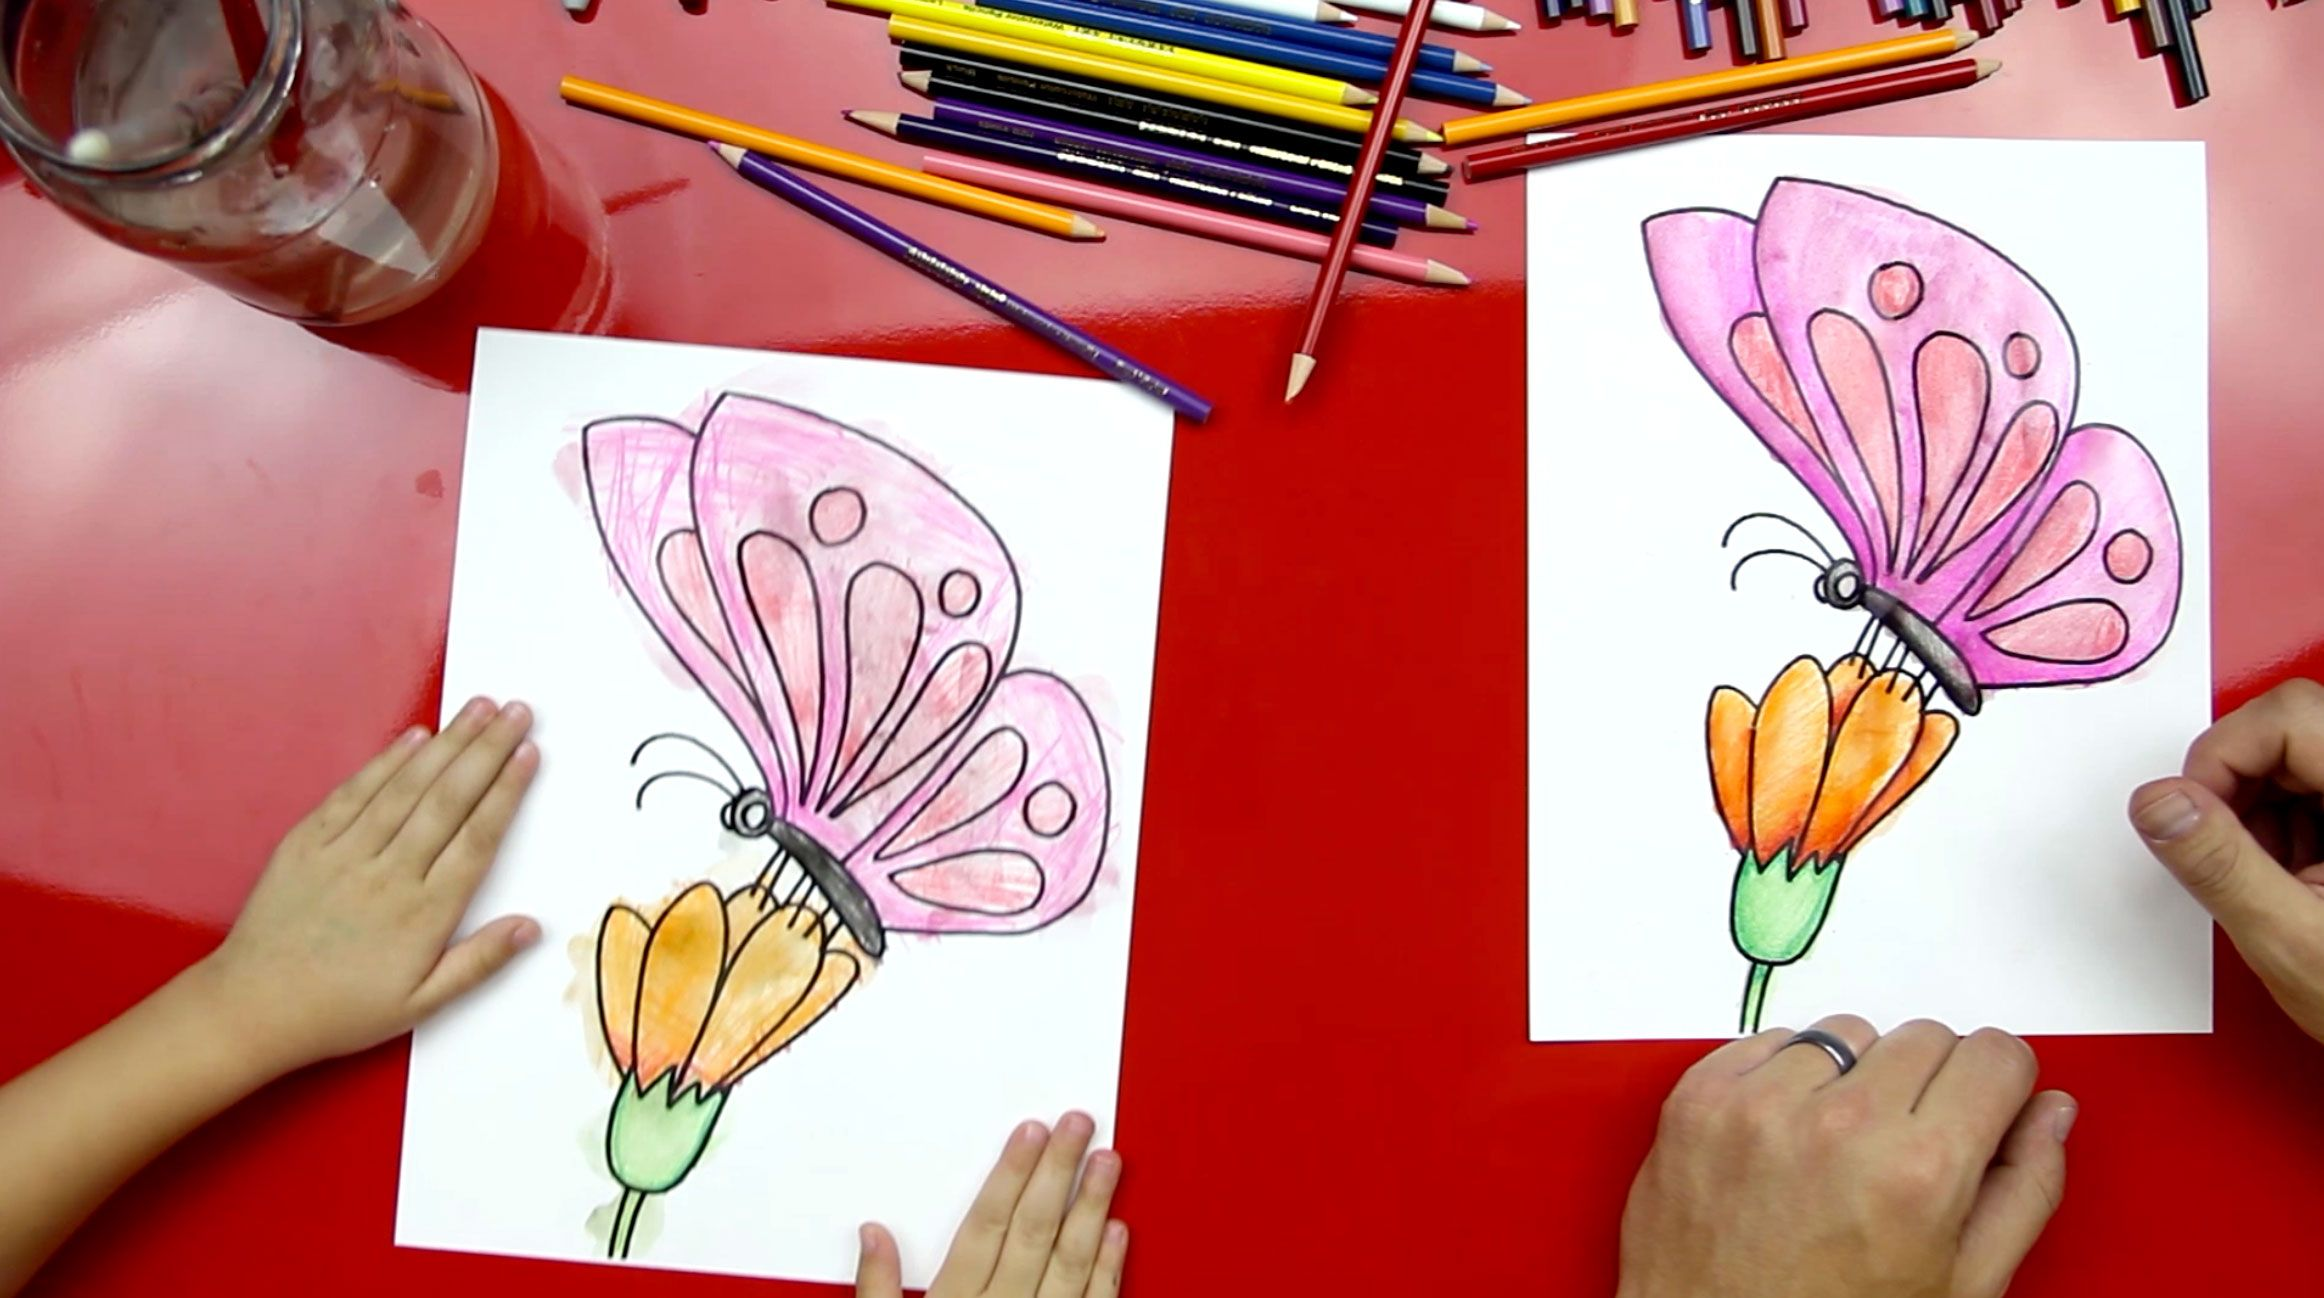 How To Color A Butterfly With Watercolor Pencils Art For Kids Hub Art For Kids Hub Art Lessons Painting For Kids